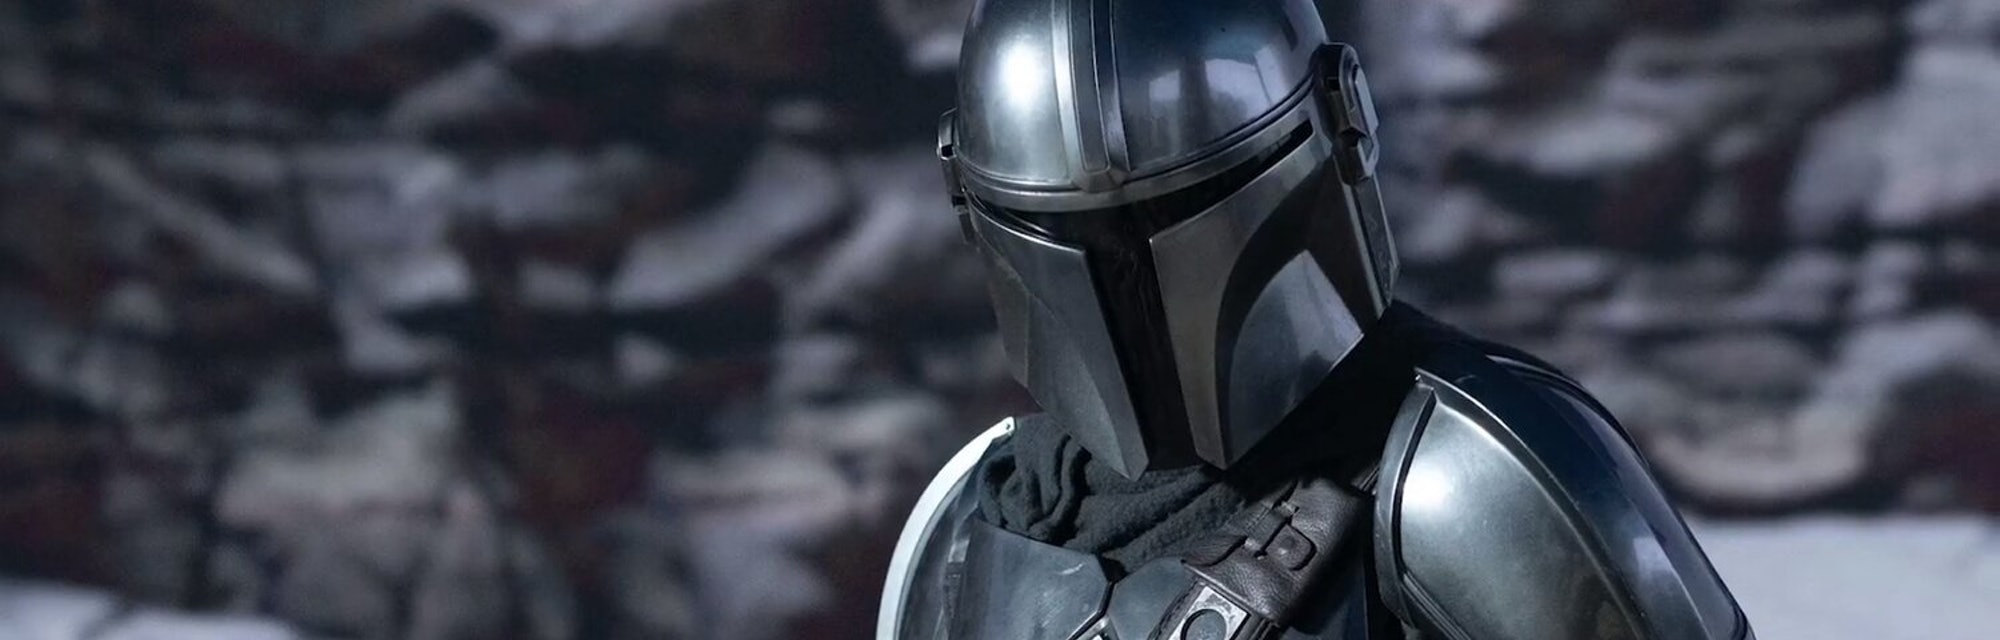 Mandalorian Season 2 Trailer Release Date News And 2 More Updates